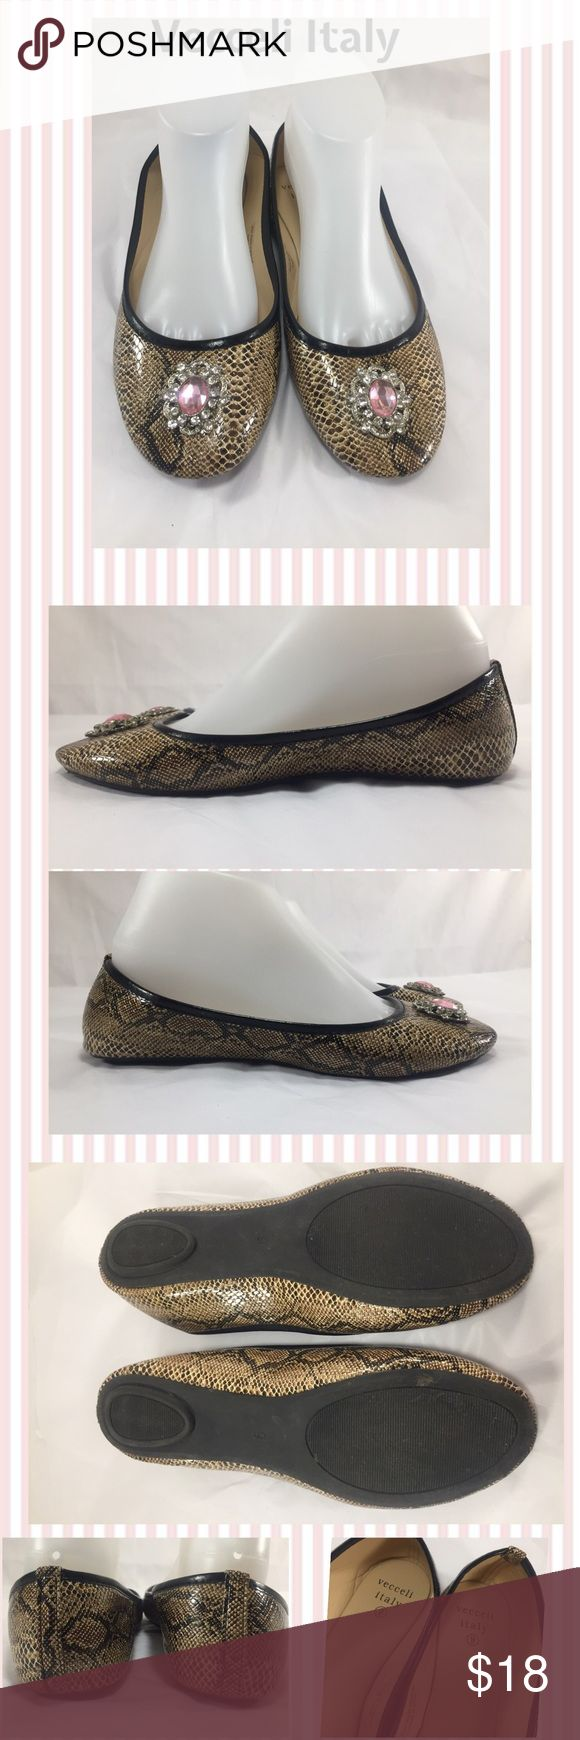 Vecceli Italy Jeweled Animal Print Slippers Vecceli Italy Man-made Animal Print Ballet Slippers with Jewel Detail. Ladies size 9. These shoes run wide even though it is not in their size title. Nice pre-owned condition. Orig.$55.00 Vecceli Italy Shoes Slippers